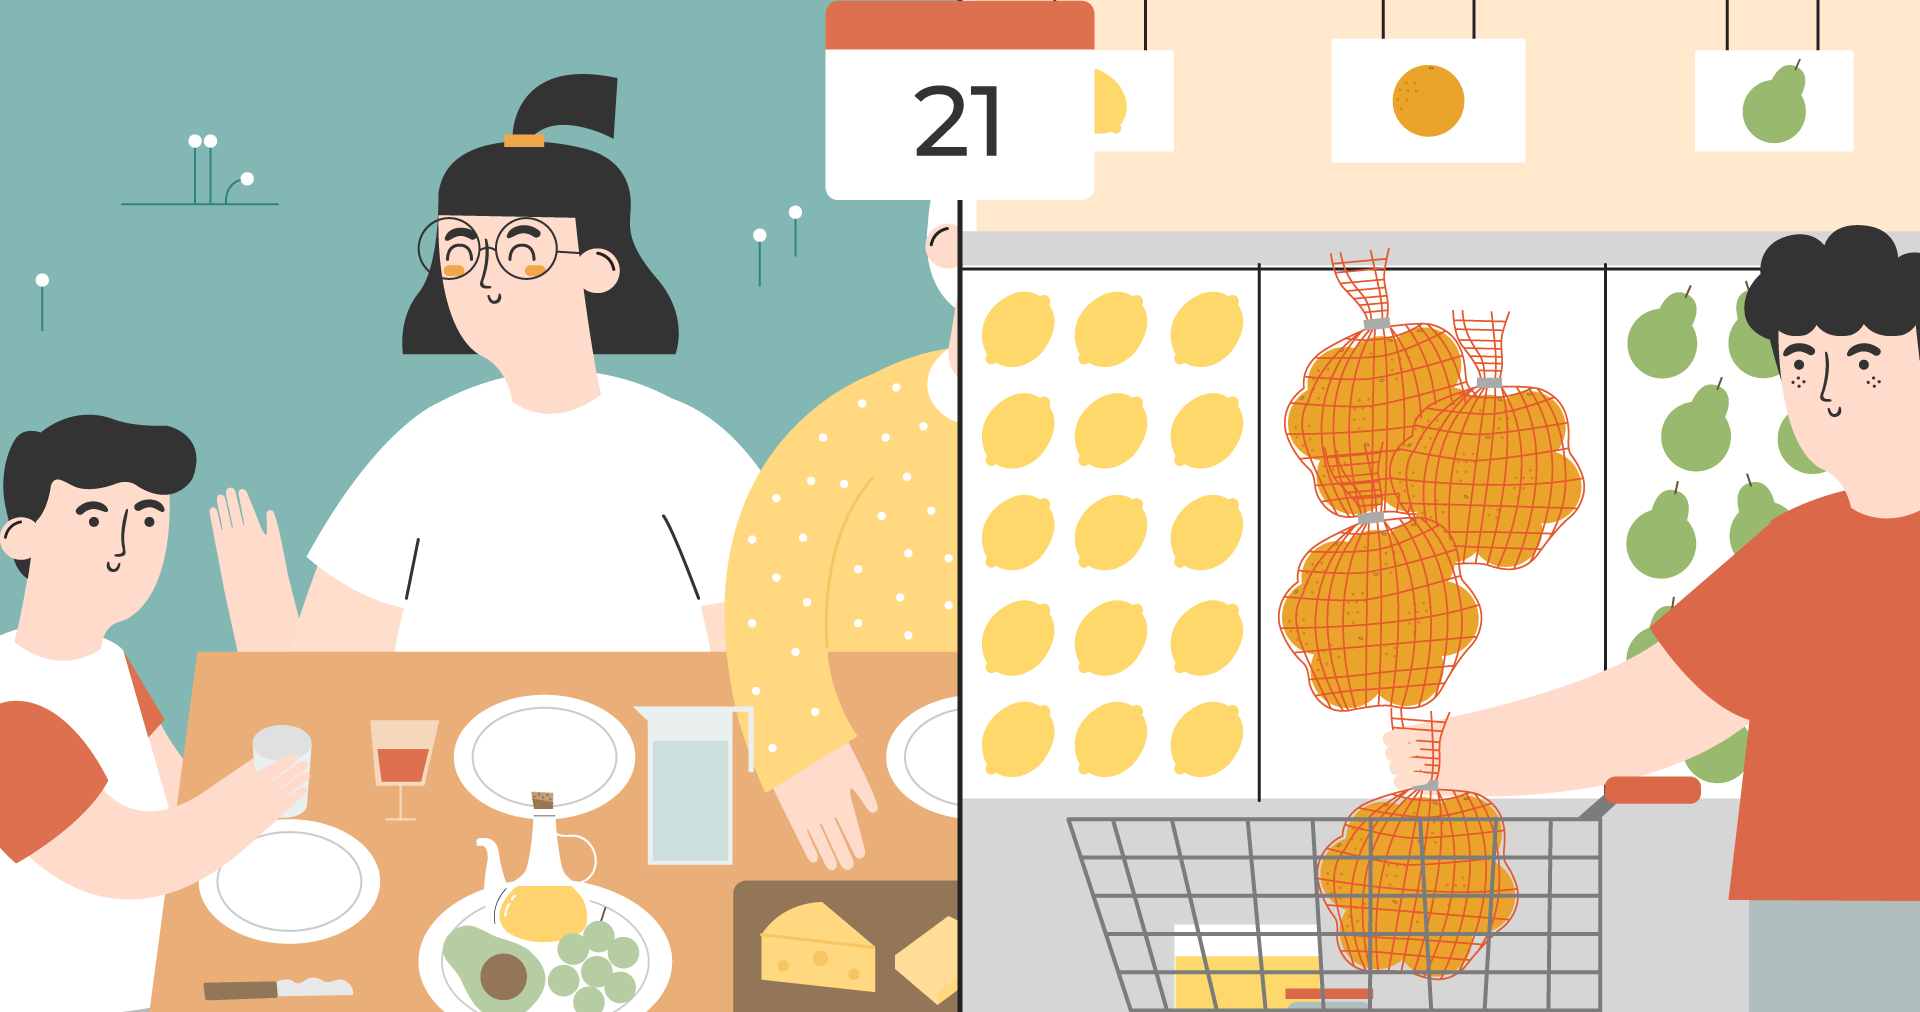 Illustration of a family eating organic oranges and a person at the supermarket buying netted oranges